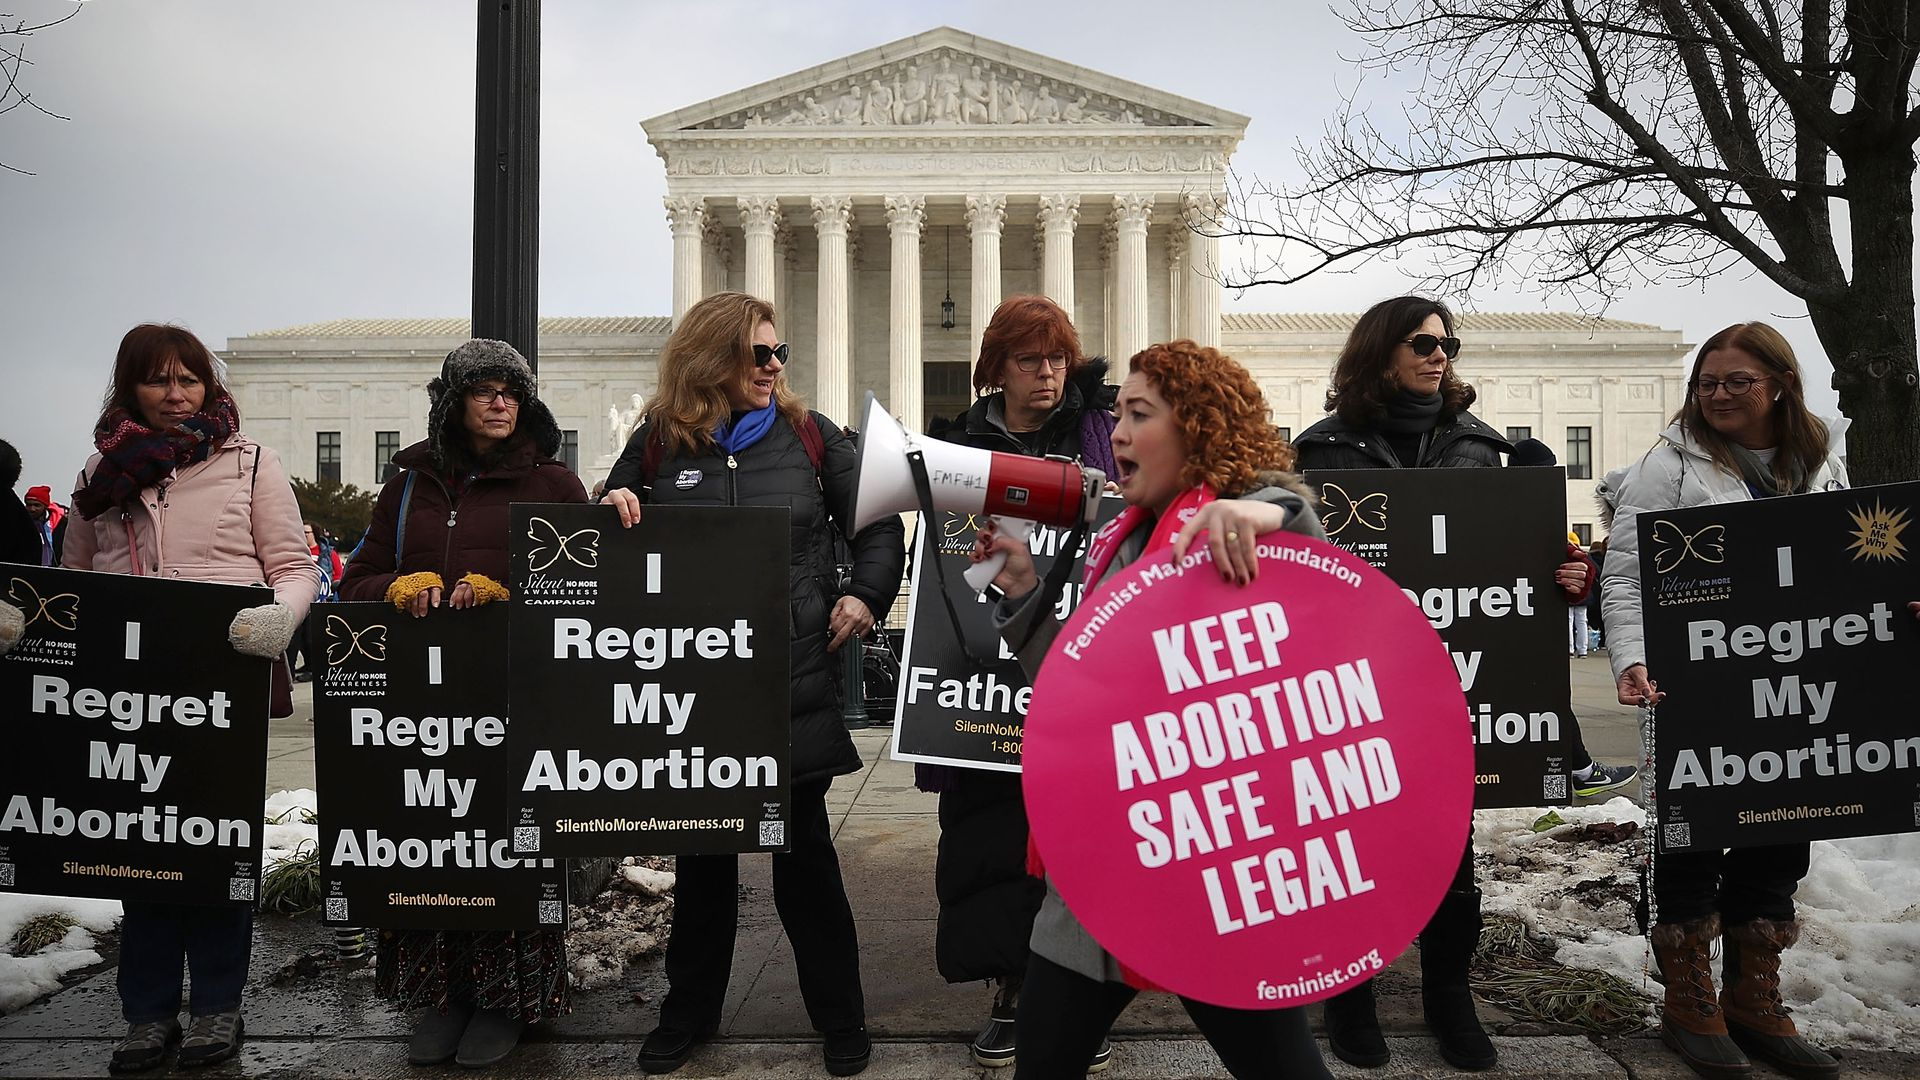 In this image, a pro-abortion protester walks past a line of anti-abortion protestors in front of the Supreme Court.